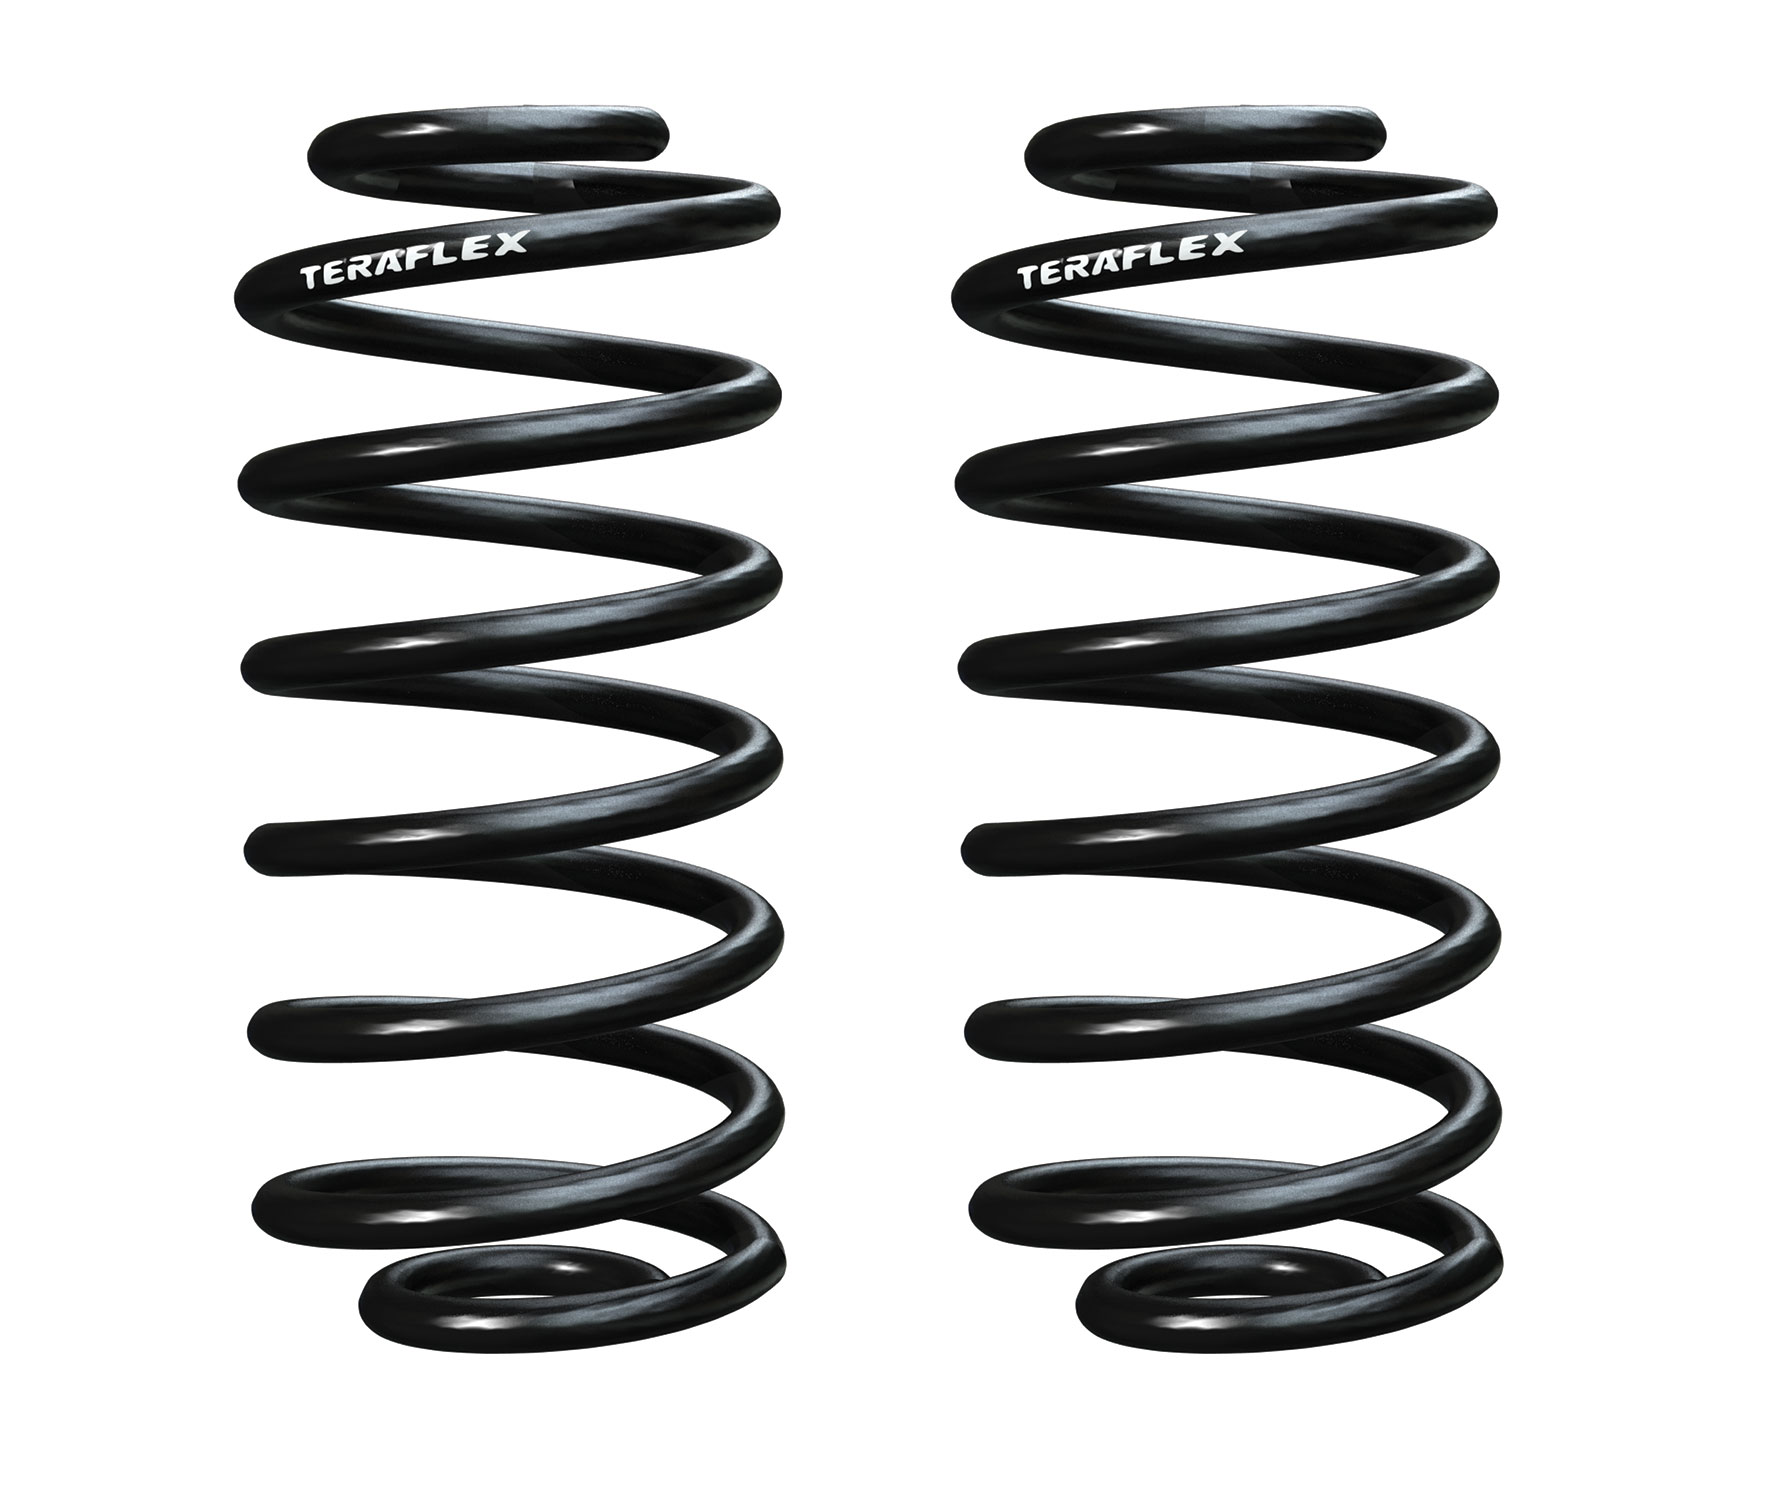 Teraflex Rear Coil Springs 5in - TJ/LJ